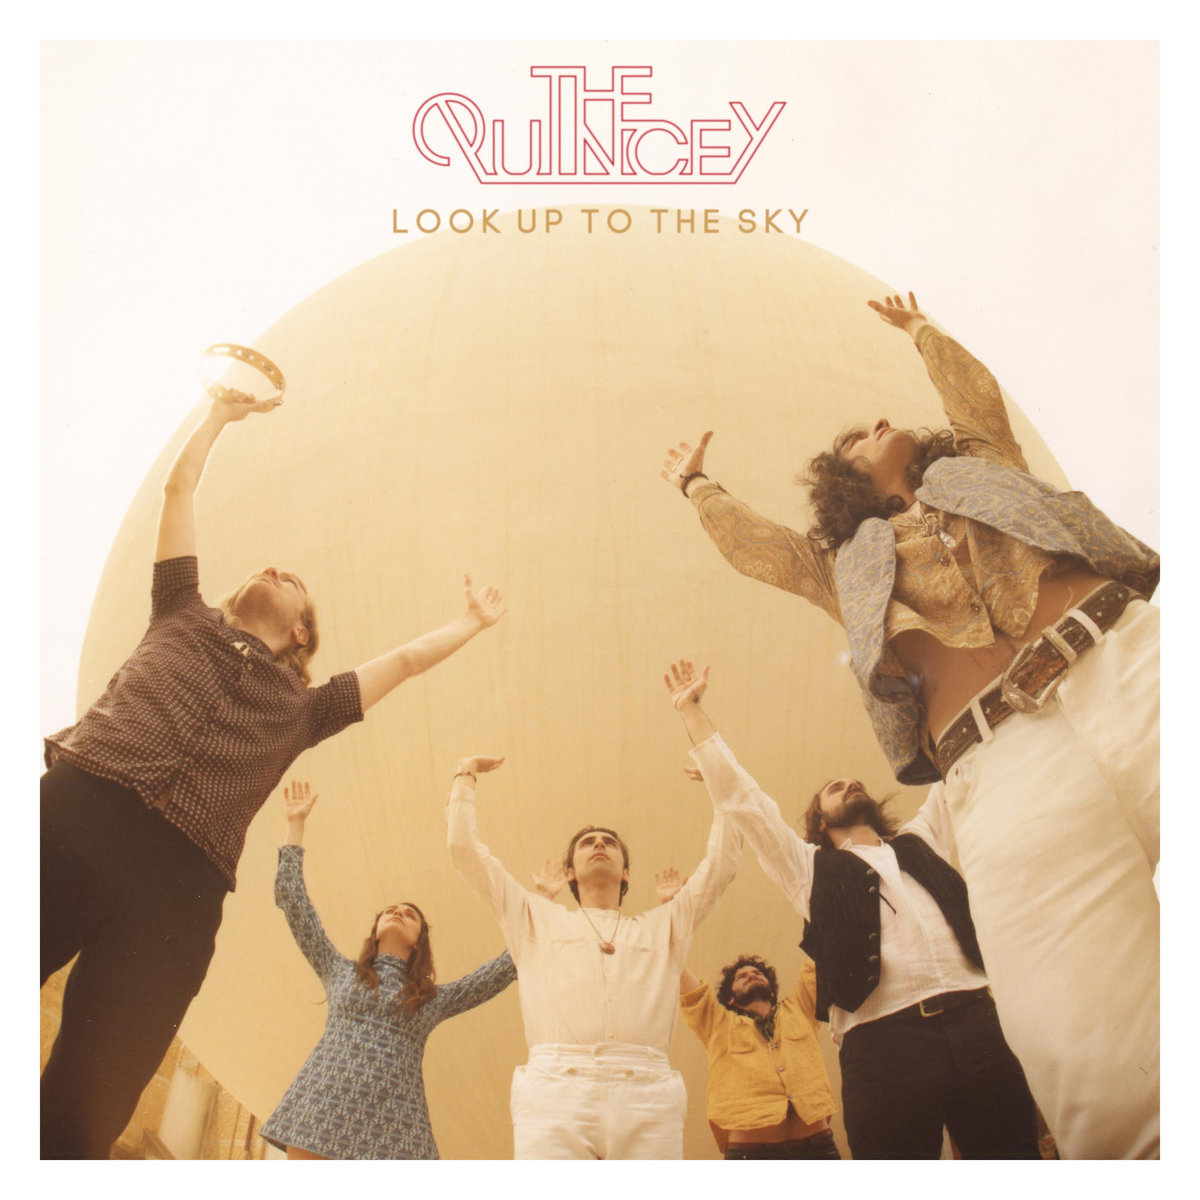 The Quincey - Oh, no! @ 'Look Up To The Sky' album (alternative, united kingdom)